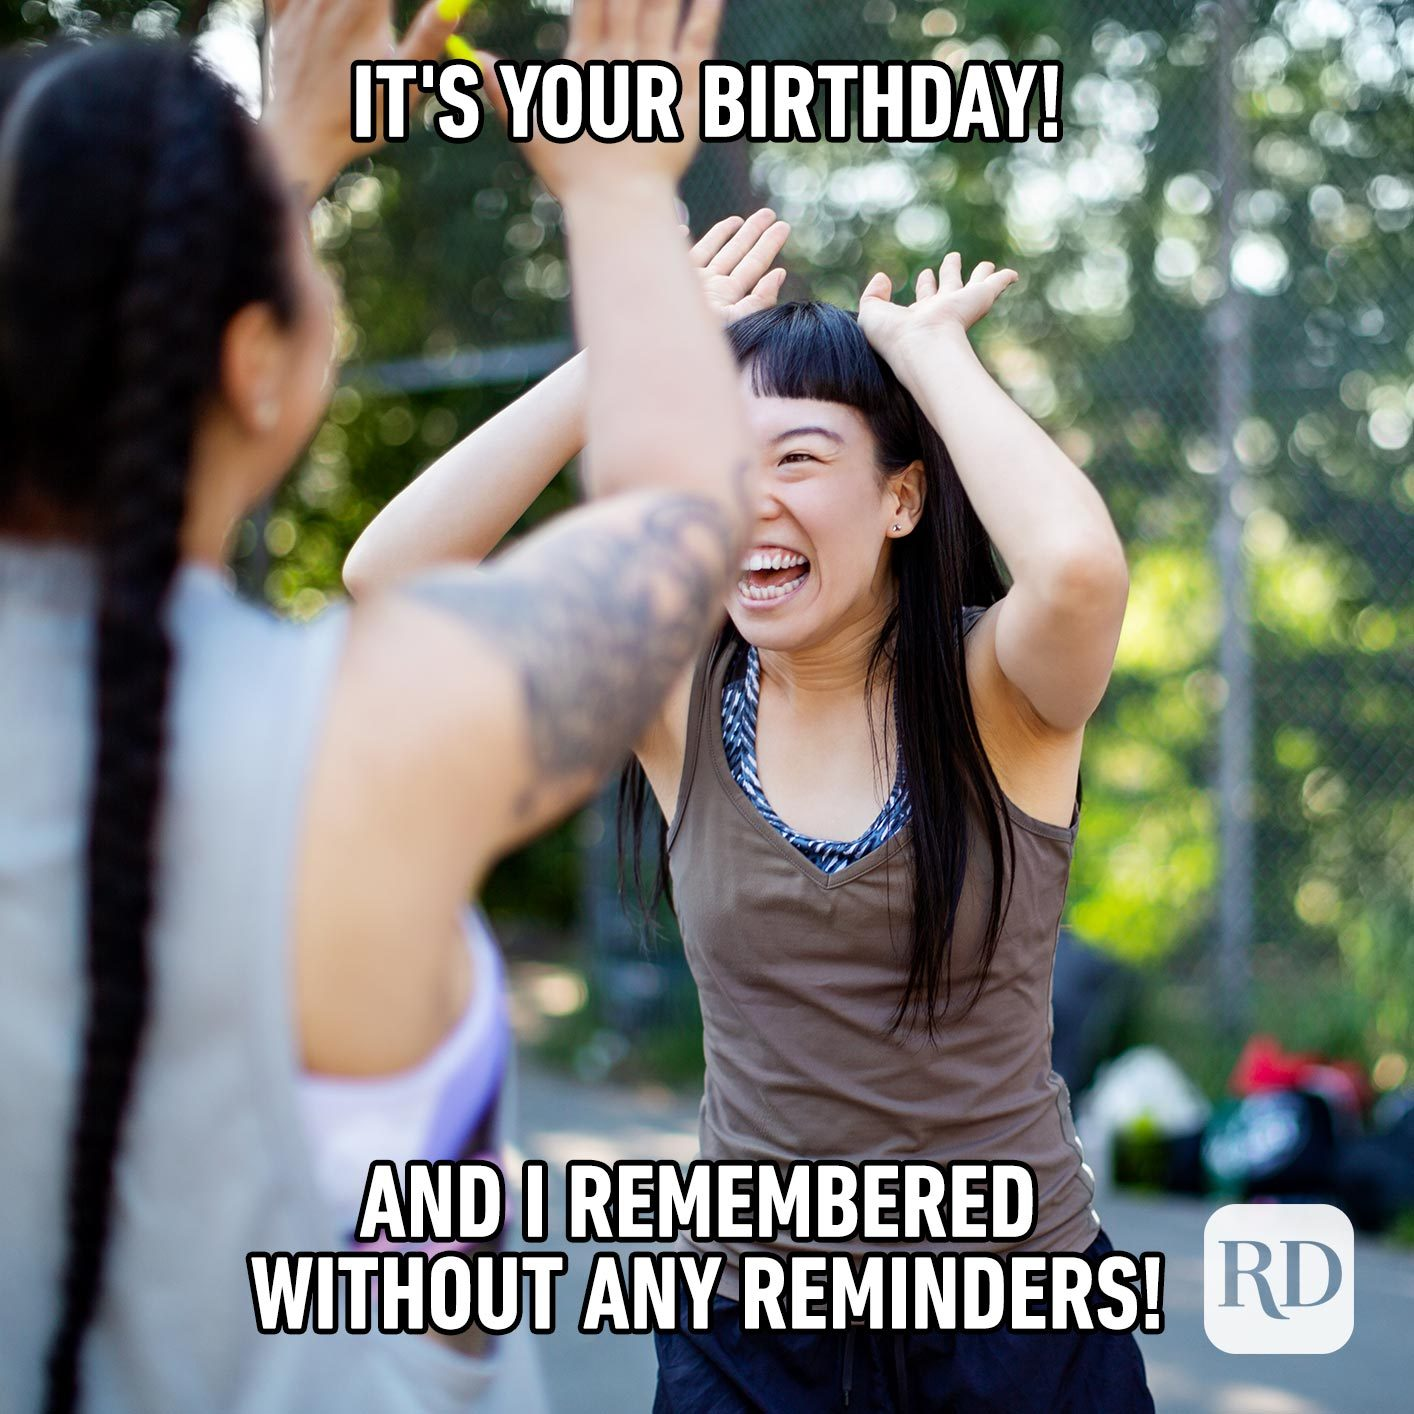 It's your birthday! And I remembered without any reminders!